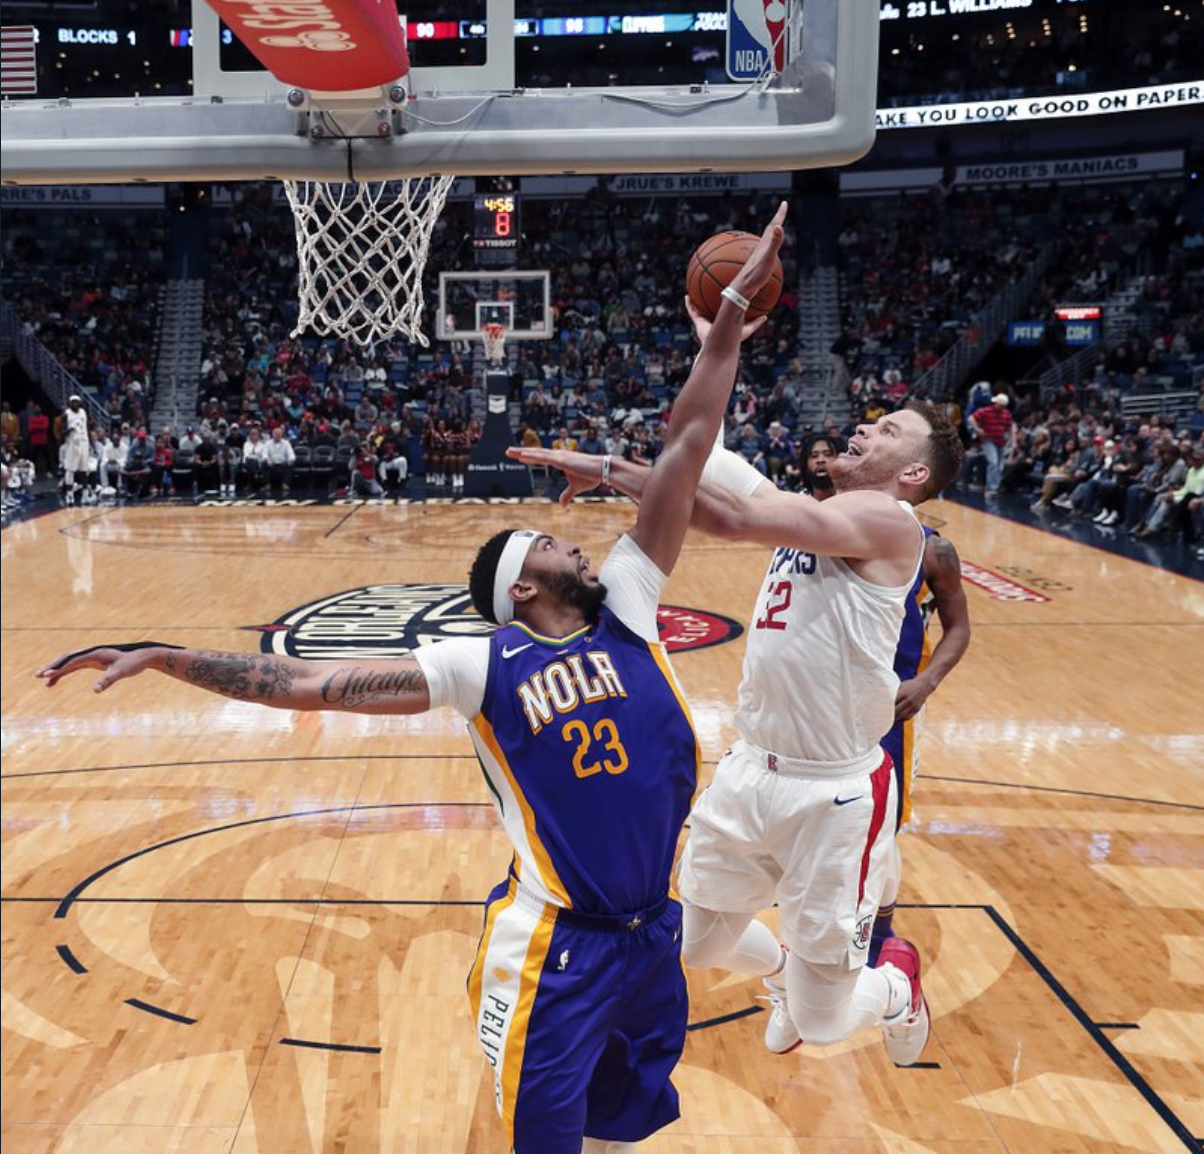 Lakers Acquire Bullock From Pistons For Rookie Mykhailiuk: Clippers Use Big Second Half To Beat Pelicans 112-103